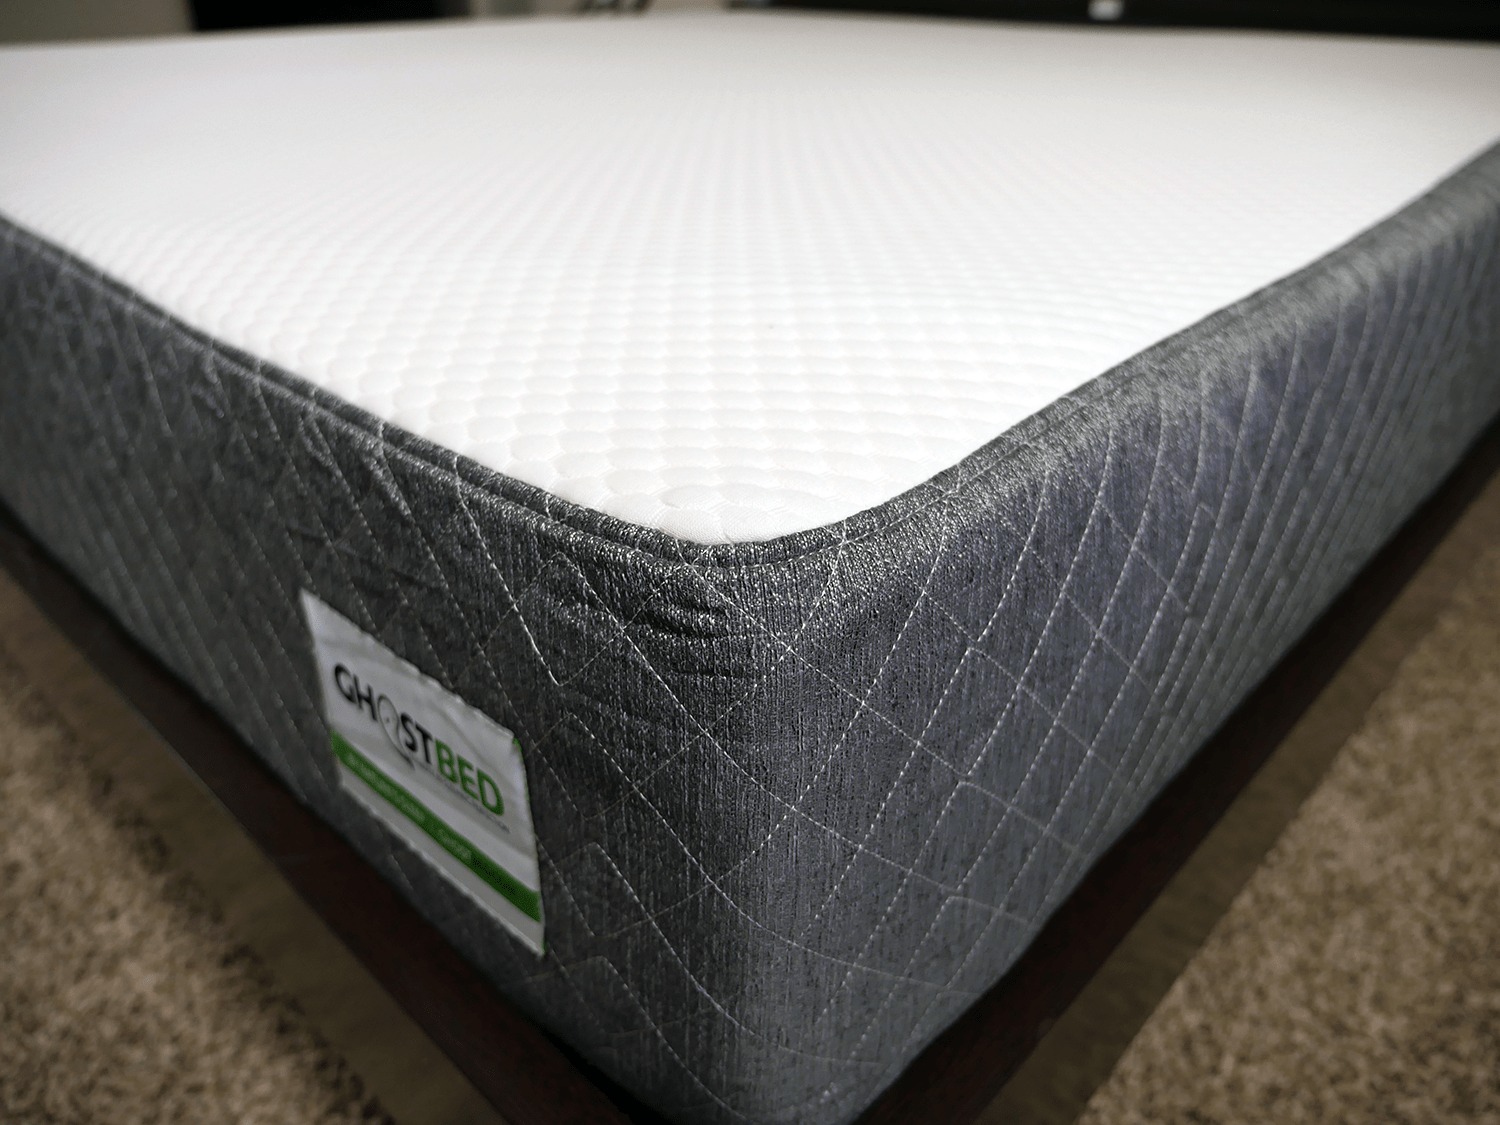 GhostBed mattress cover